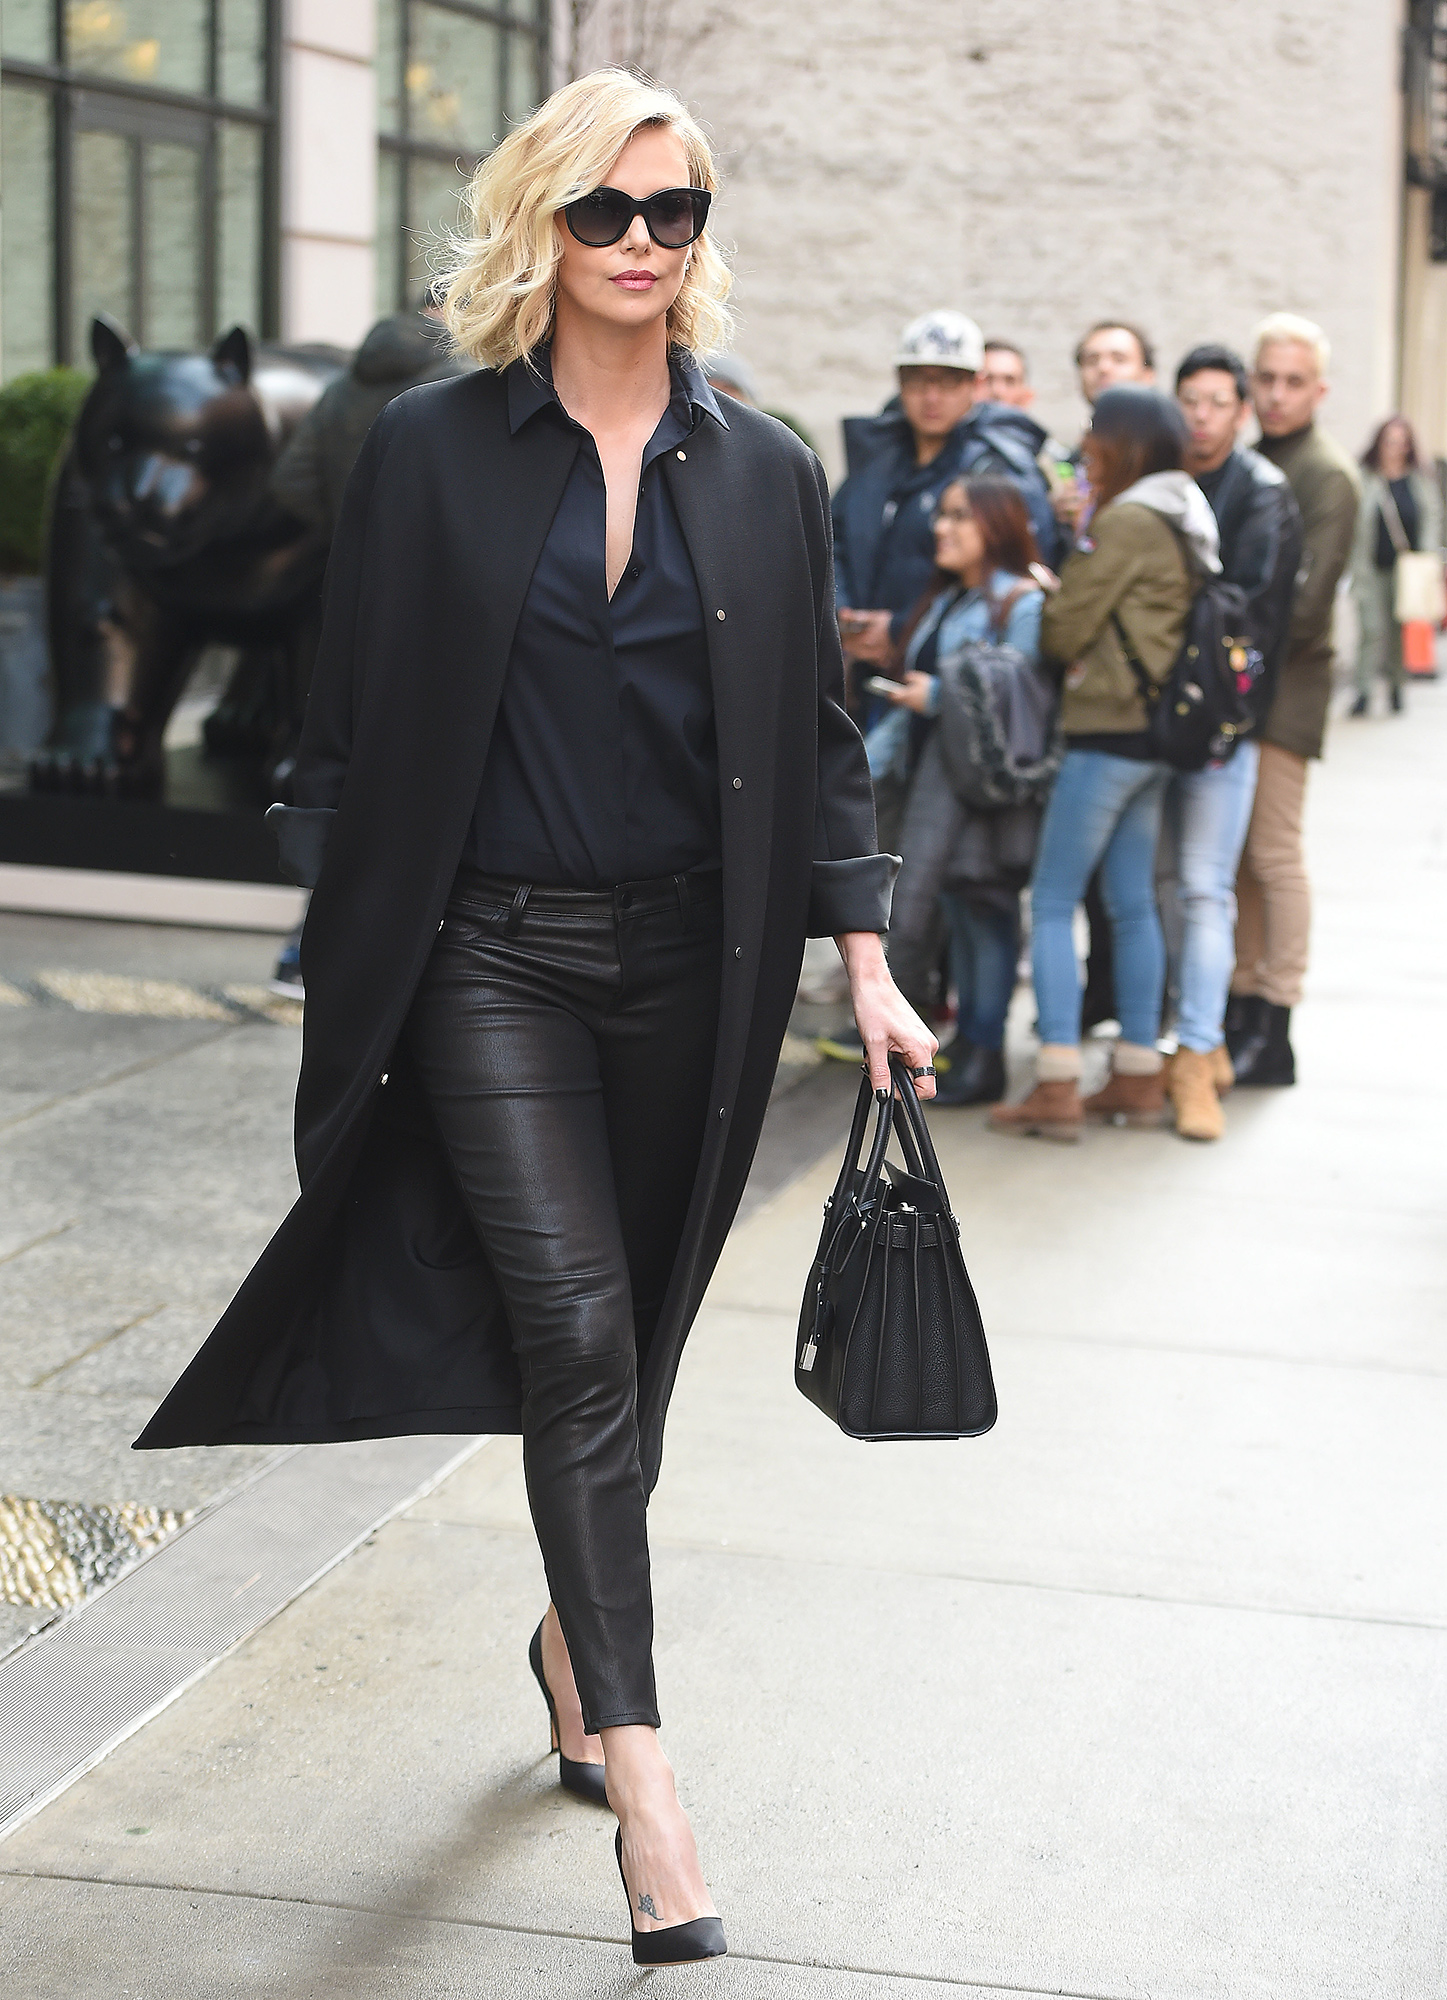 Charlize Theron seen wearing black leather pants in New York City